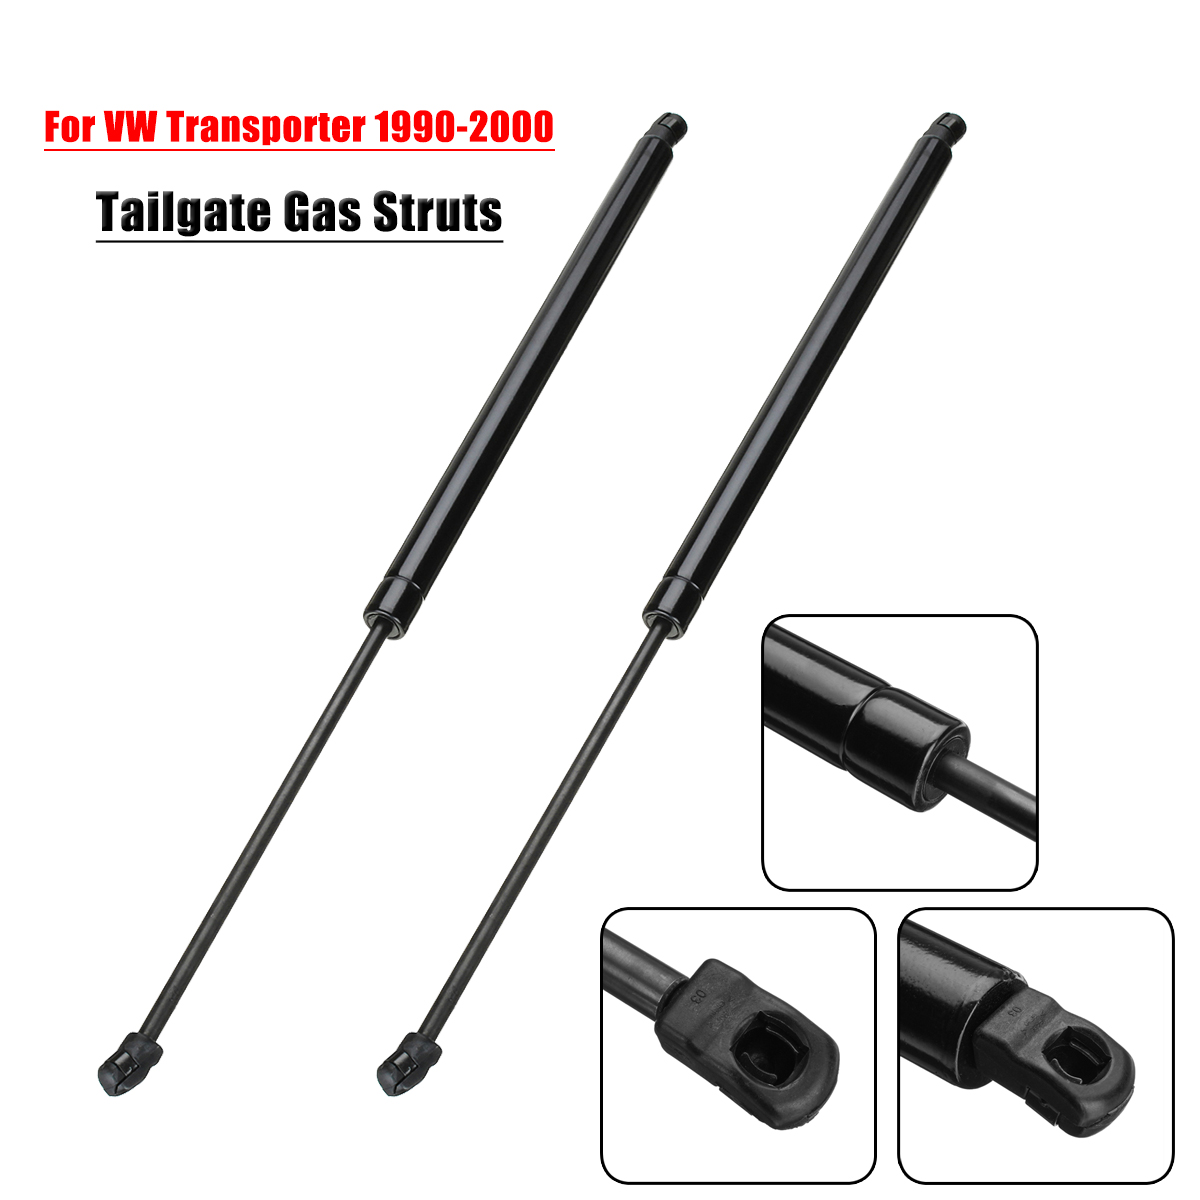 2x Car Rear Tailgate Lift Trunk Support Rod Gas Struts 970N for Volkswagen VW Transporter T4 Transporter MK IV 1990-2003 free shipping 2 pcs lot rear trunk gas lift supports sturts car gas springs shocks for vw sedan only volkswagen passat audi a4